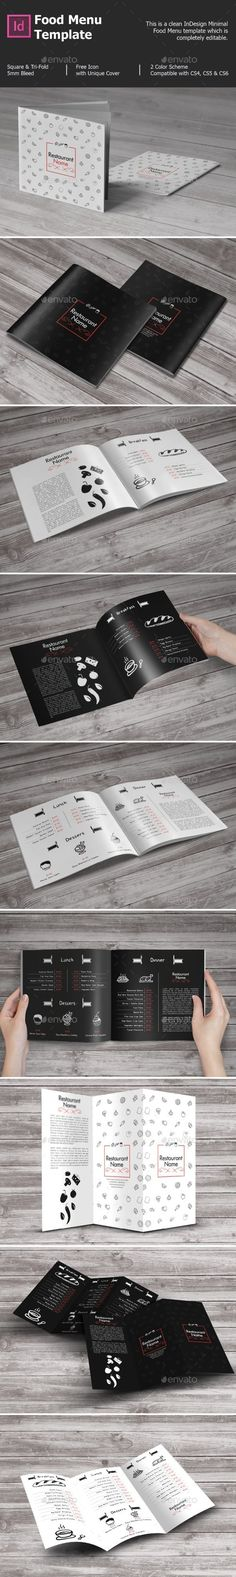 Food Menu Template #design Download: http://graphicriver.net/item/food-menu-template/9948300?ref=ksioks